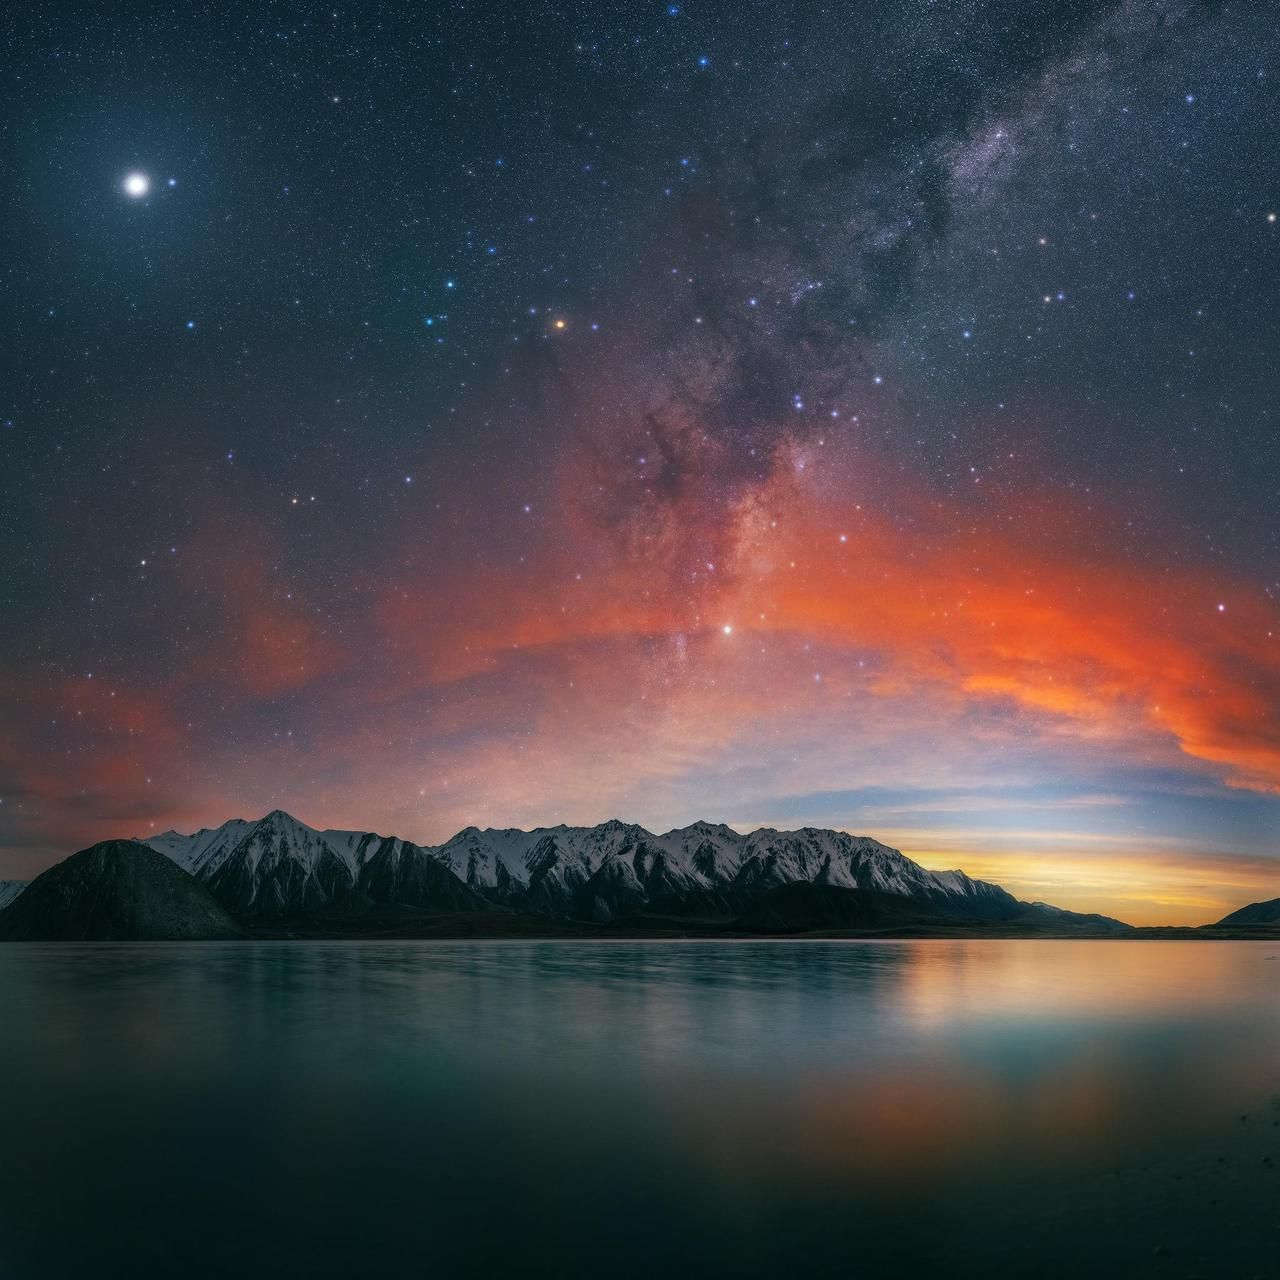 Moonrise Milky Way Sunset Come Together For Sunset Landscape Cool Places To Visit Nature Photography